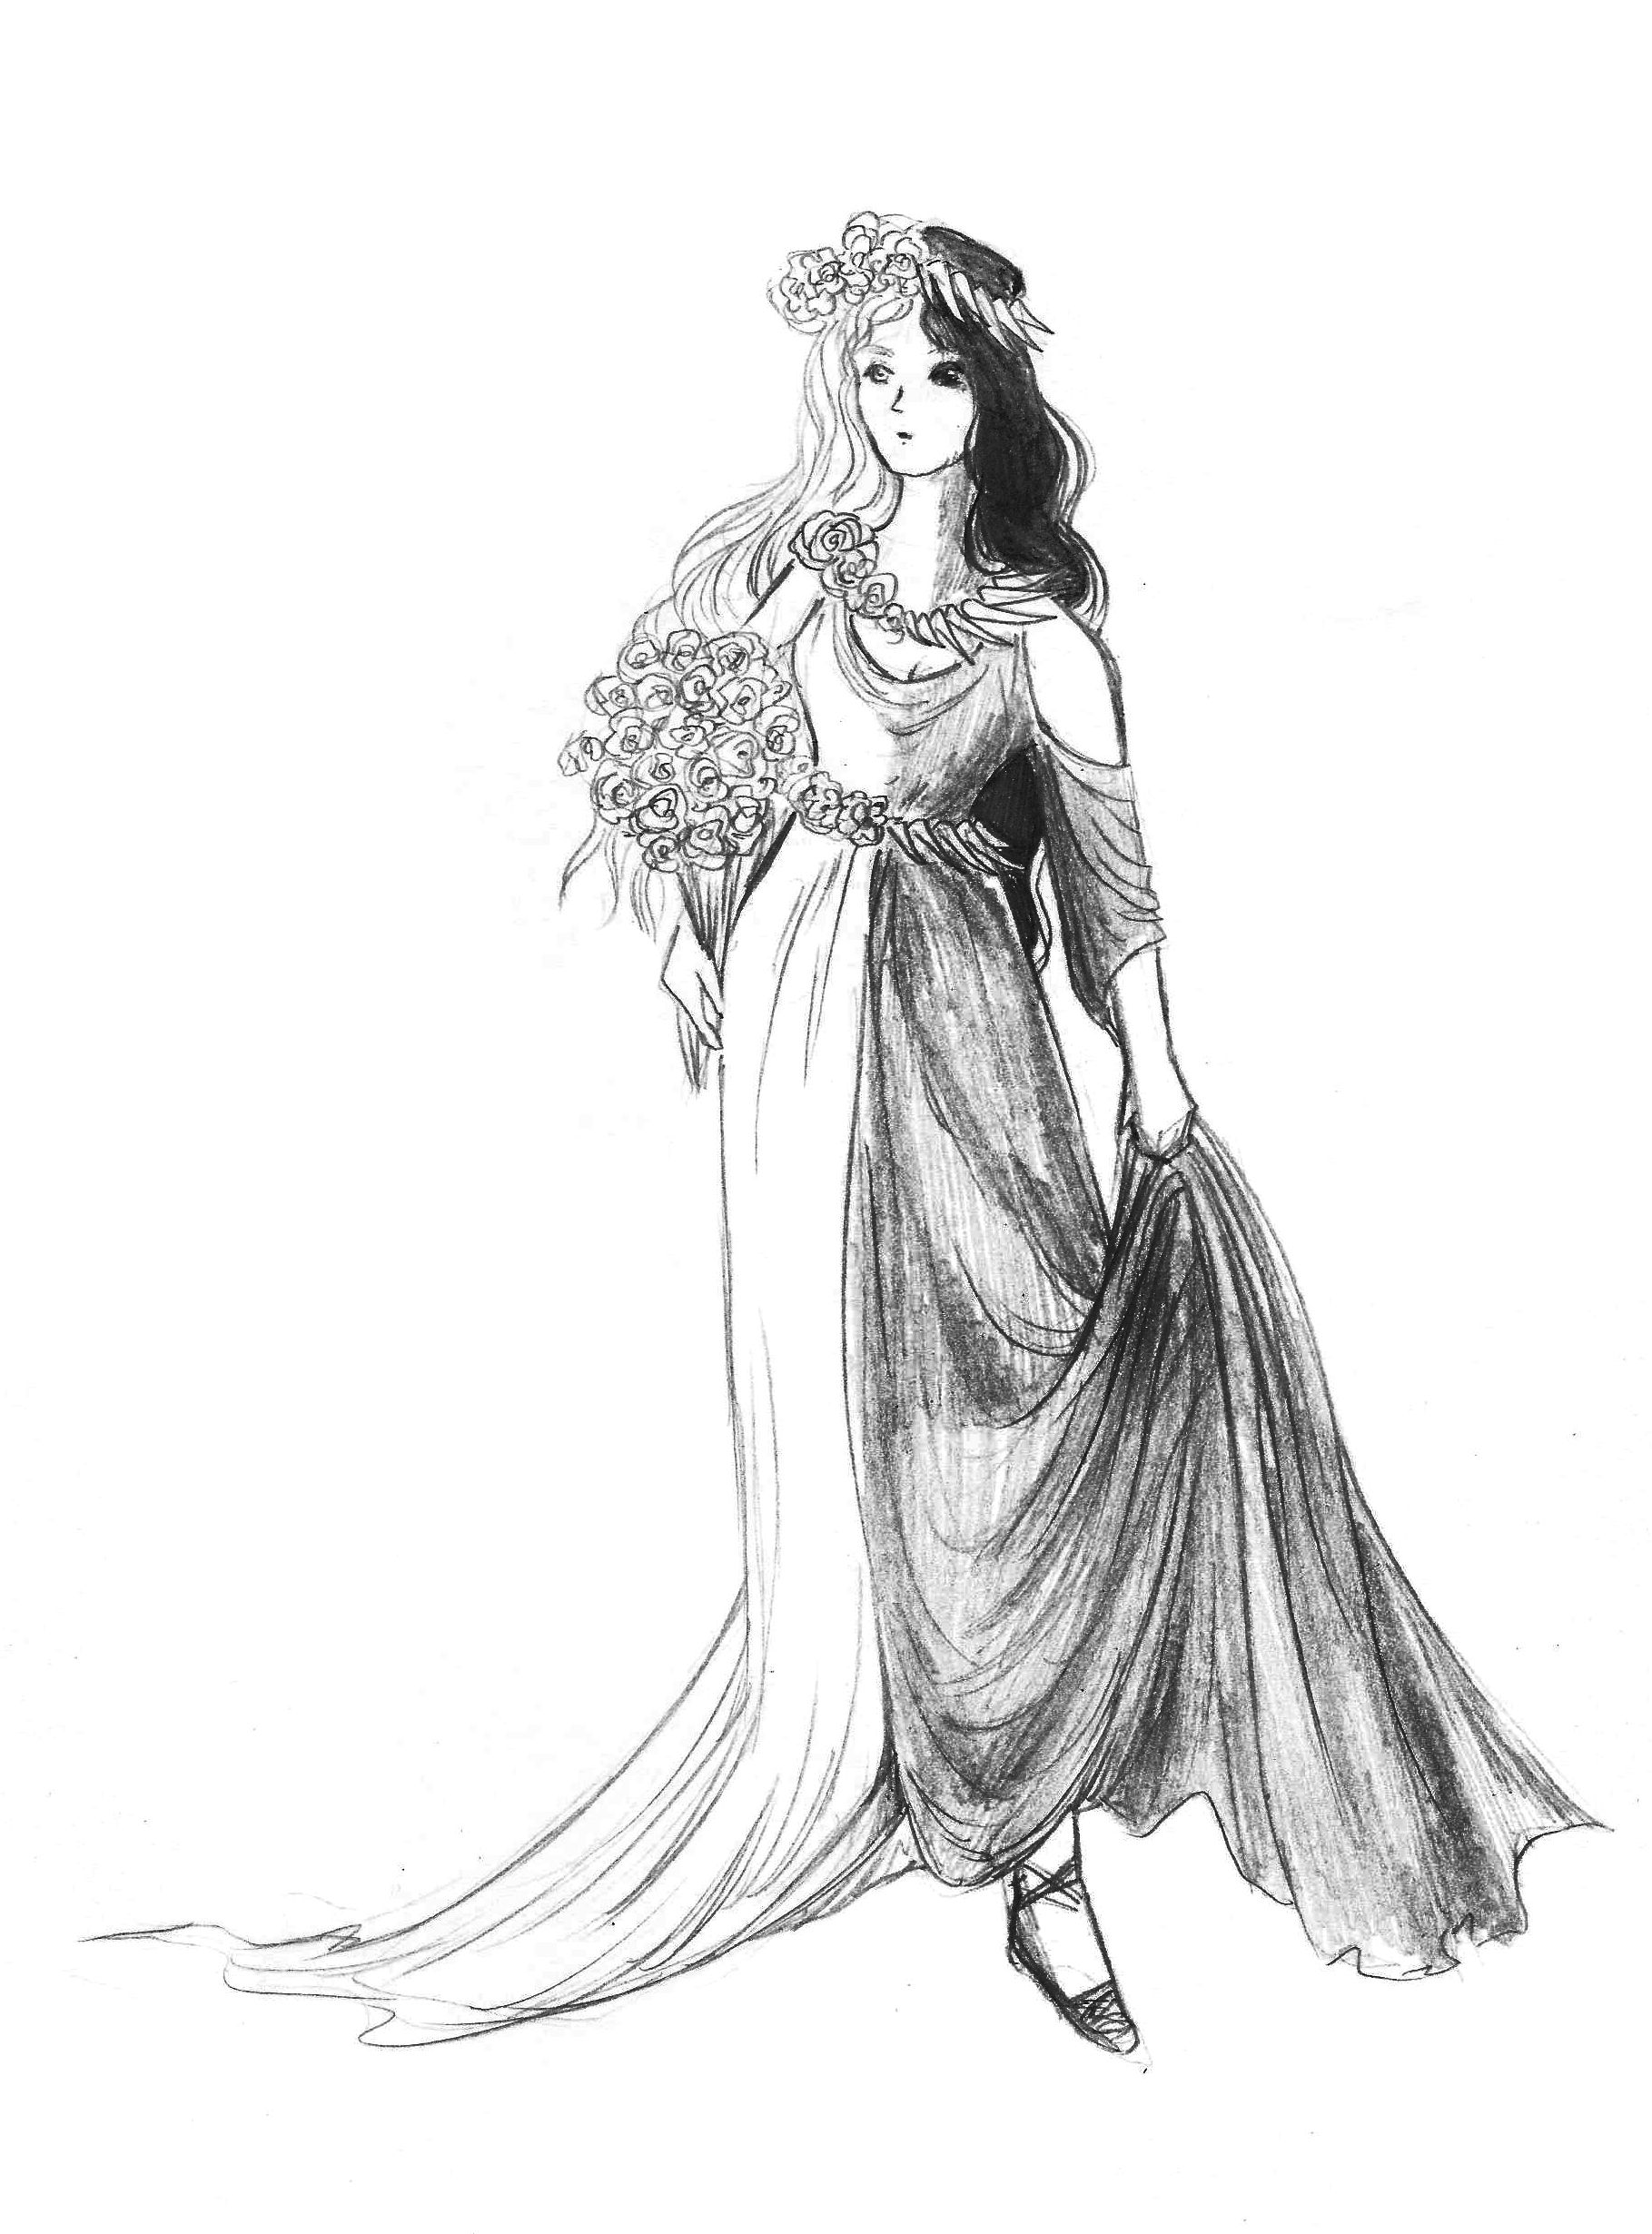 vector library At paintingvalley com explore. Persephone drawing.